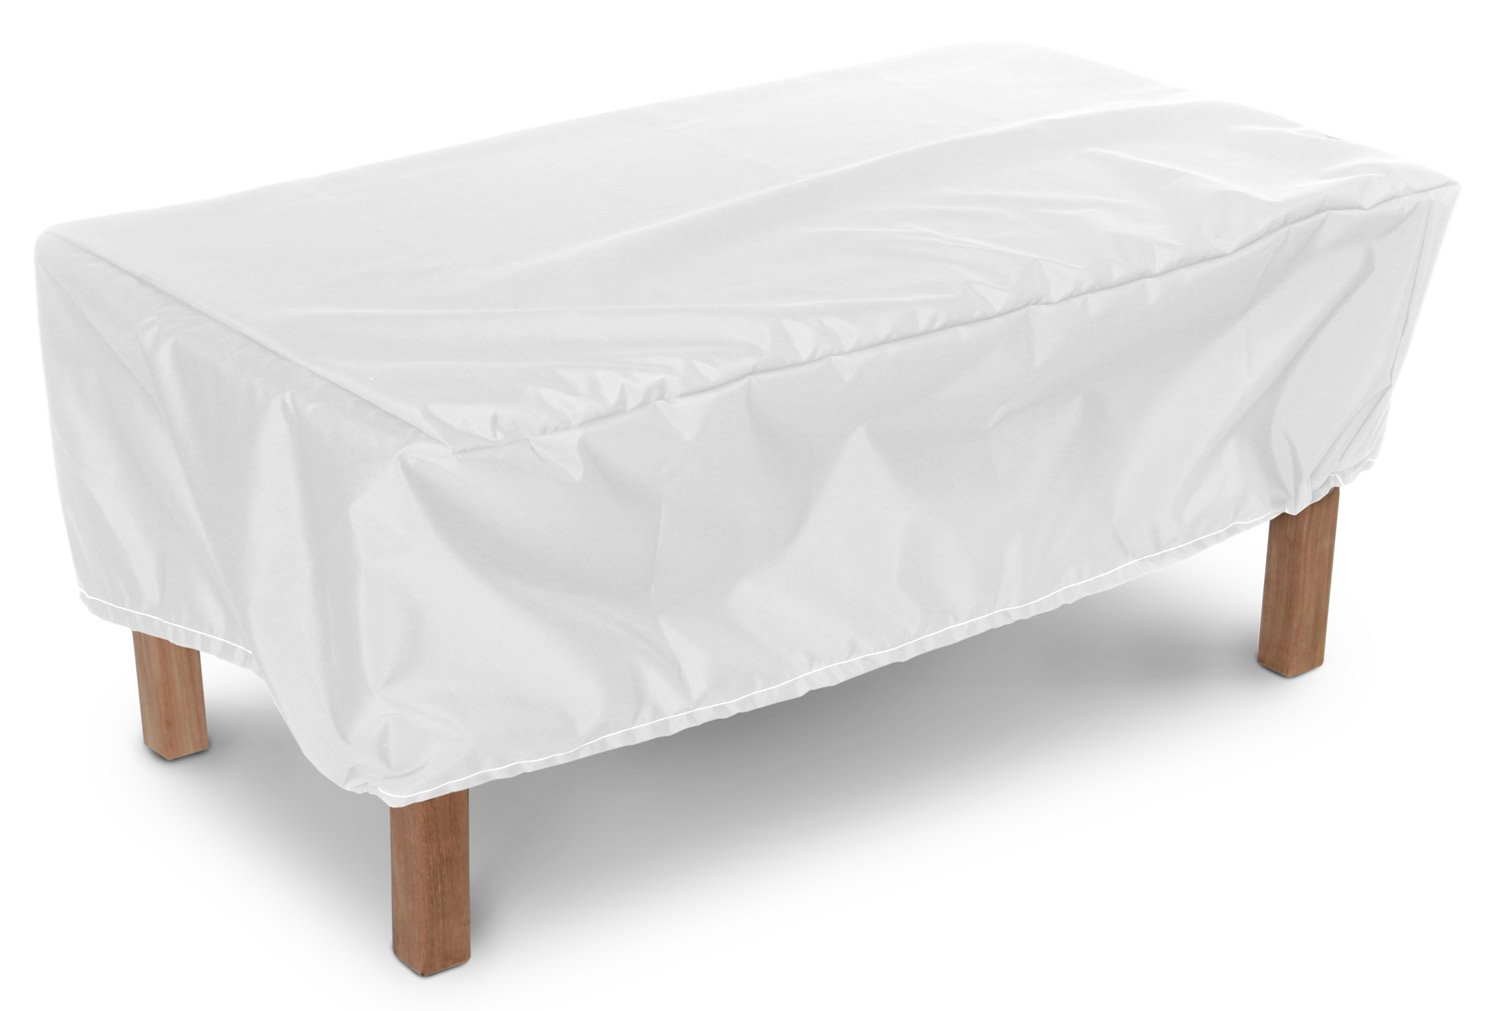 KoverRoos Weathermax 14265 48 by 24-Inch Ottoman/Small Table Cover, 48 by 24 by 15-Inch, White